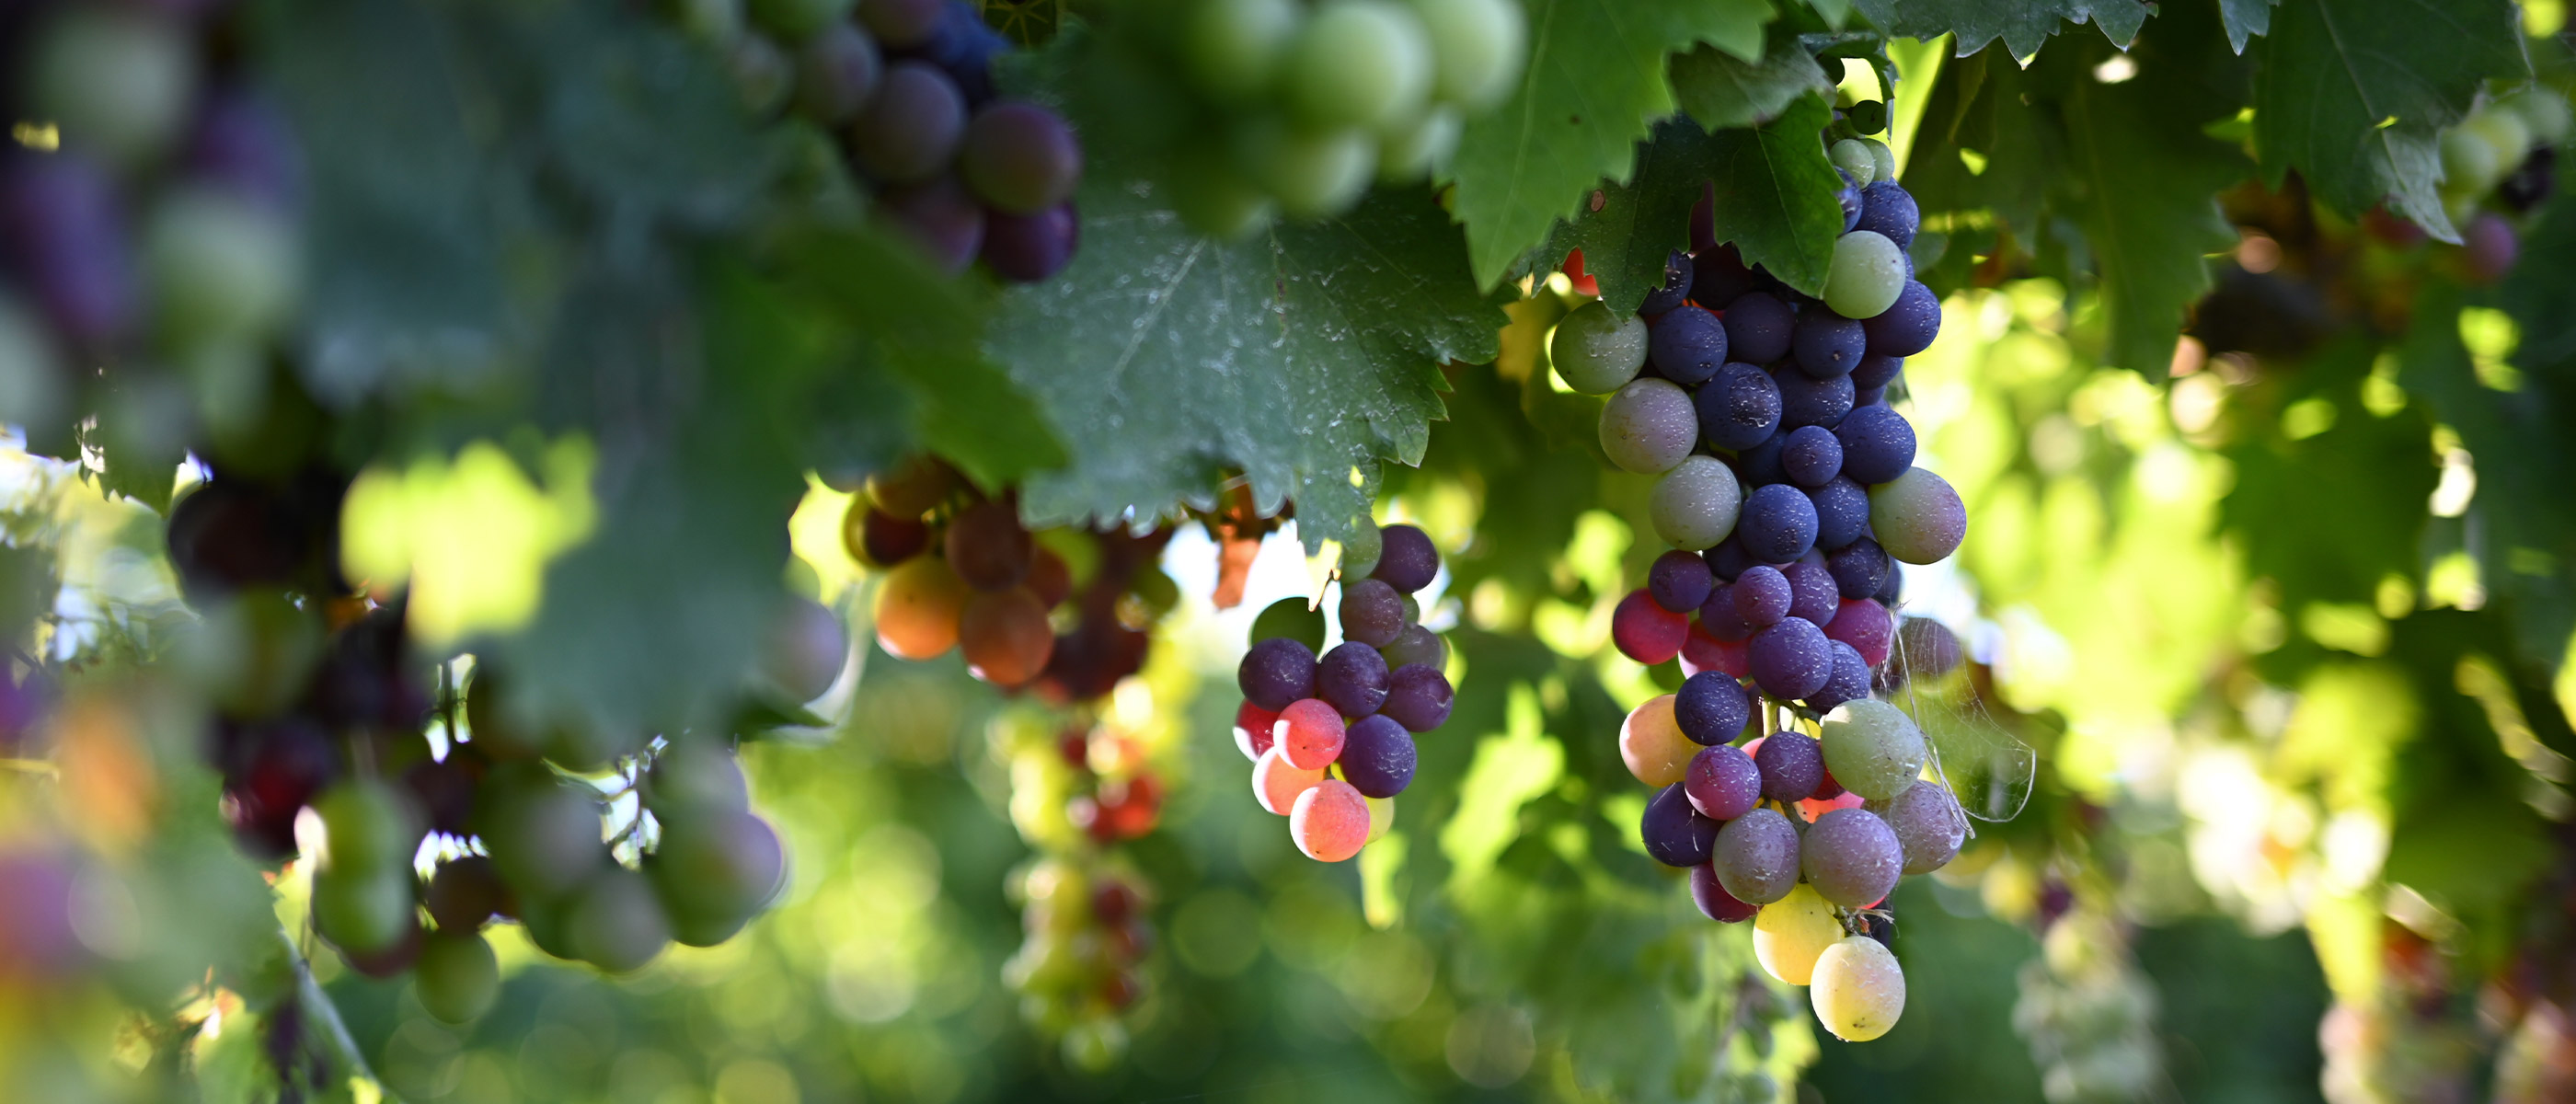 photo of grapes on a vine, taken using the NIKKOR Z 40mm f/2